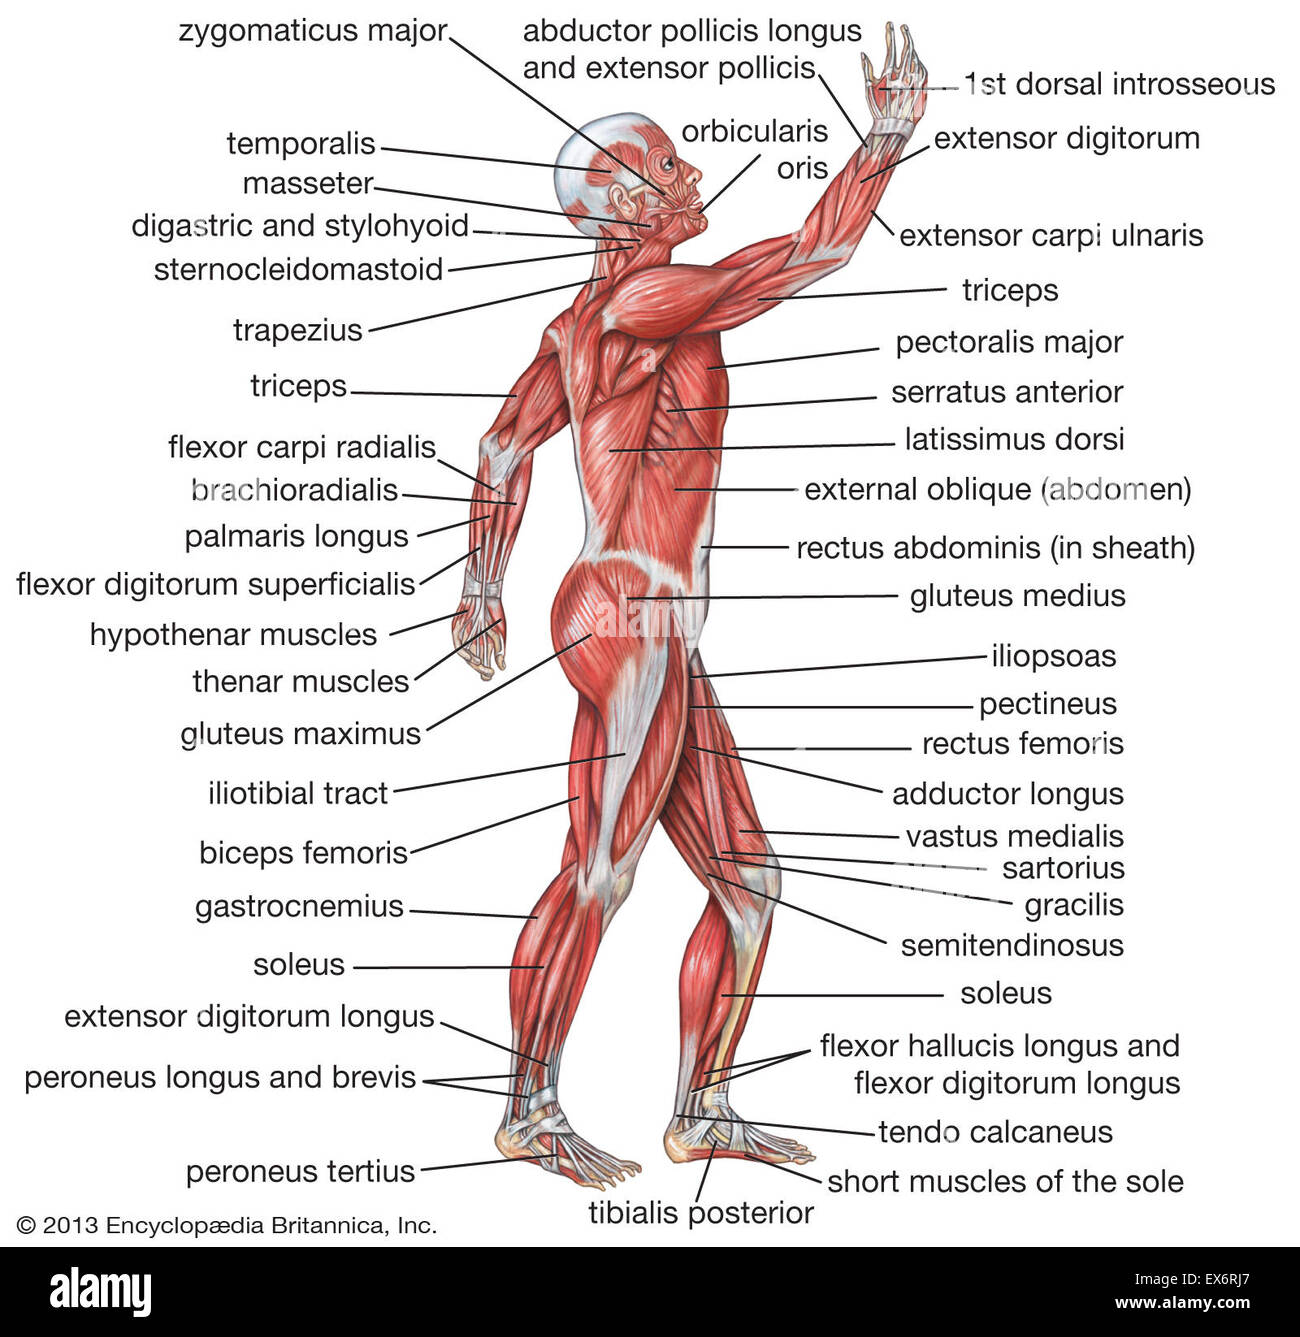 Lateral View Of The Human Muscular System Stock Photo 84972783 Alamy